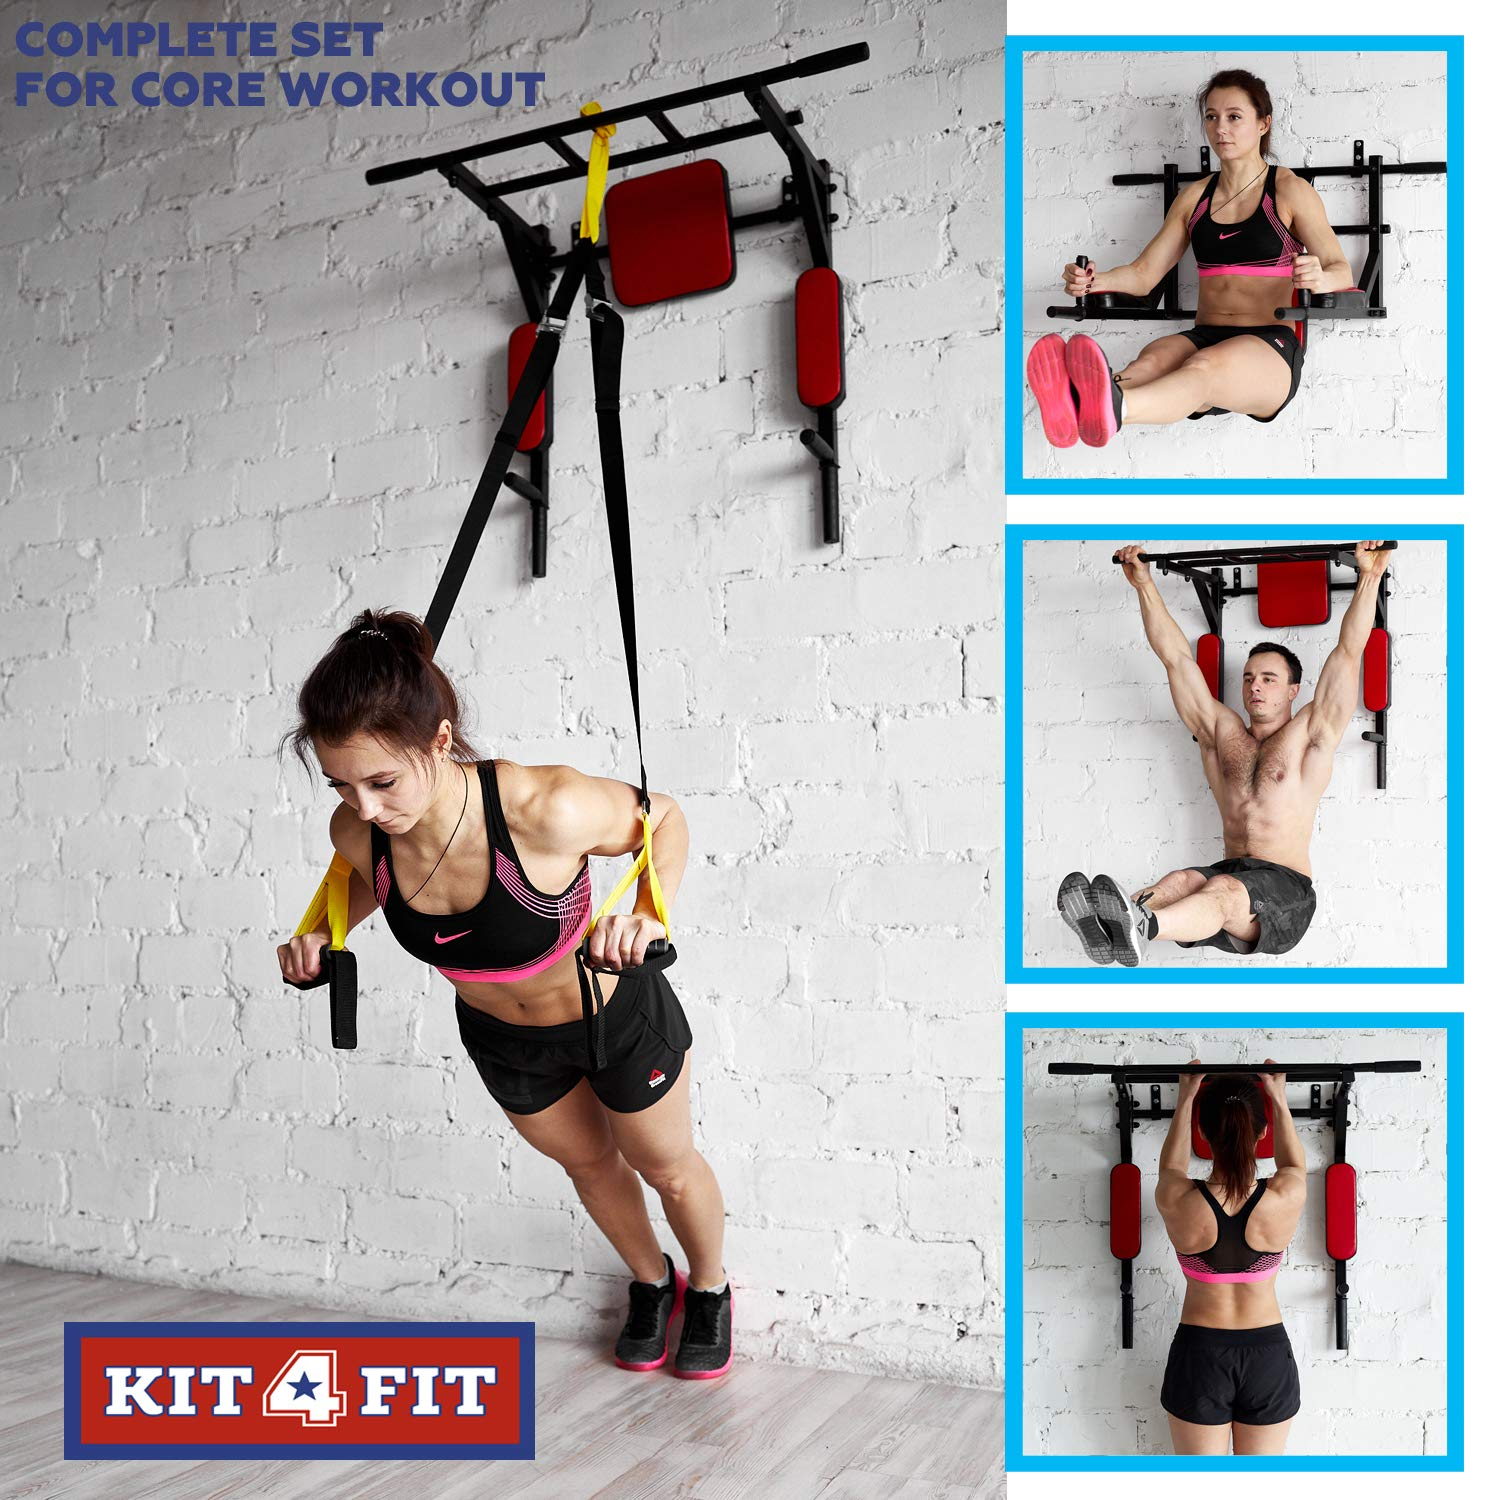 Wall Mounted Pull Up Bar and Dip Station with Vertical Knee Raise Station Indoor Home Exercise Equipment for Men Woman and Kids Great for Workout and Fitness (Red) by Kit4Fit (Image #6)